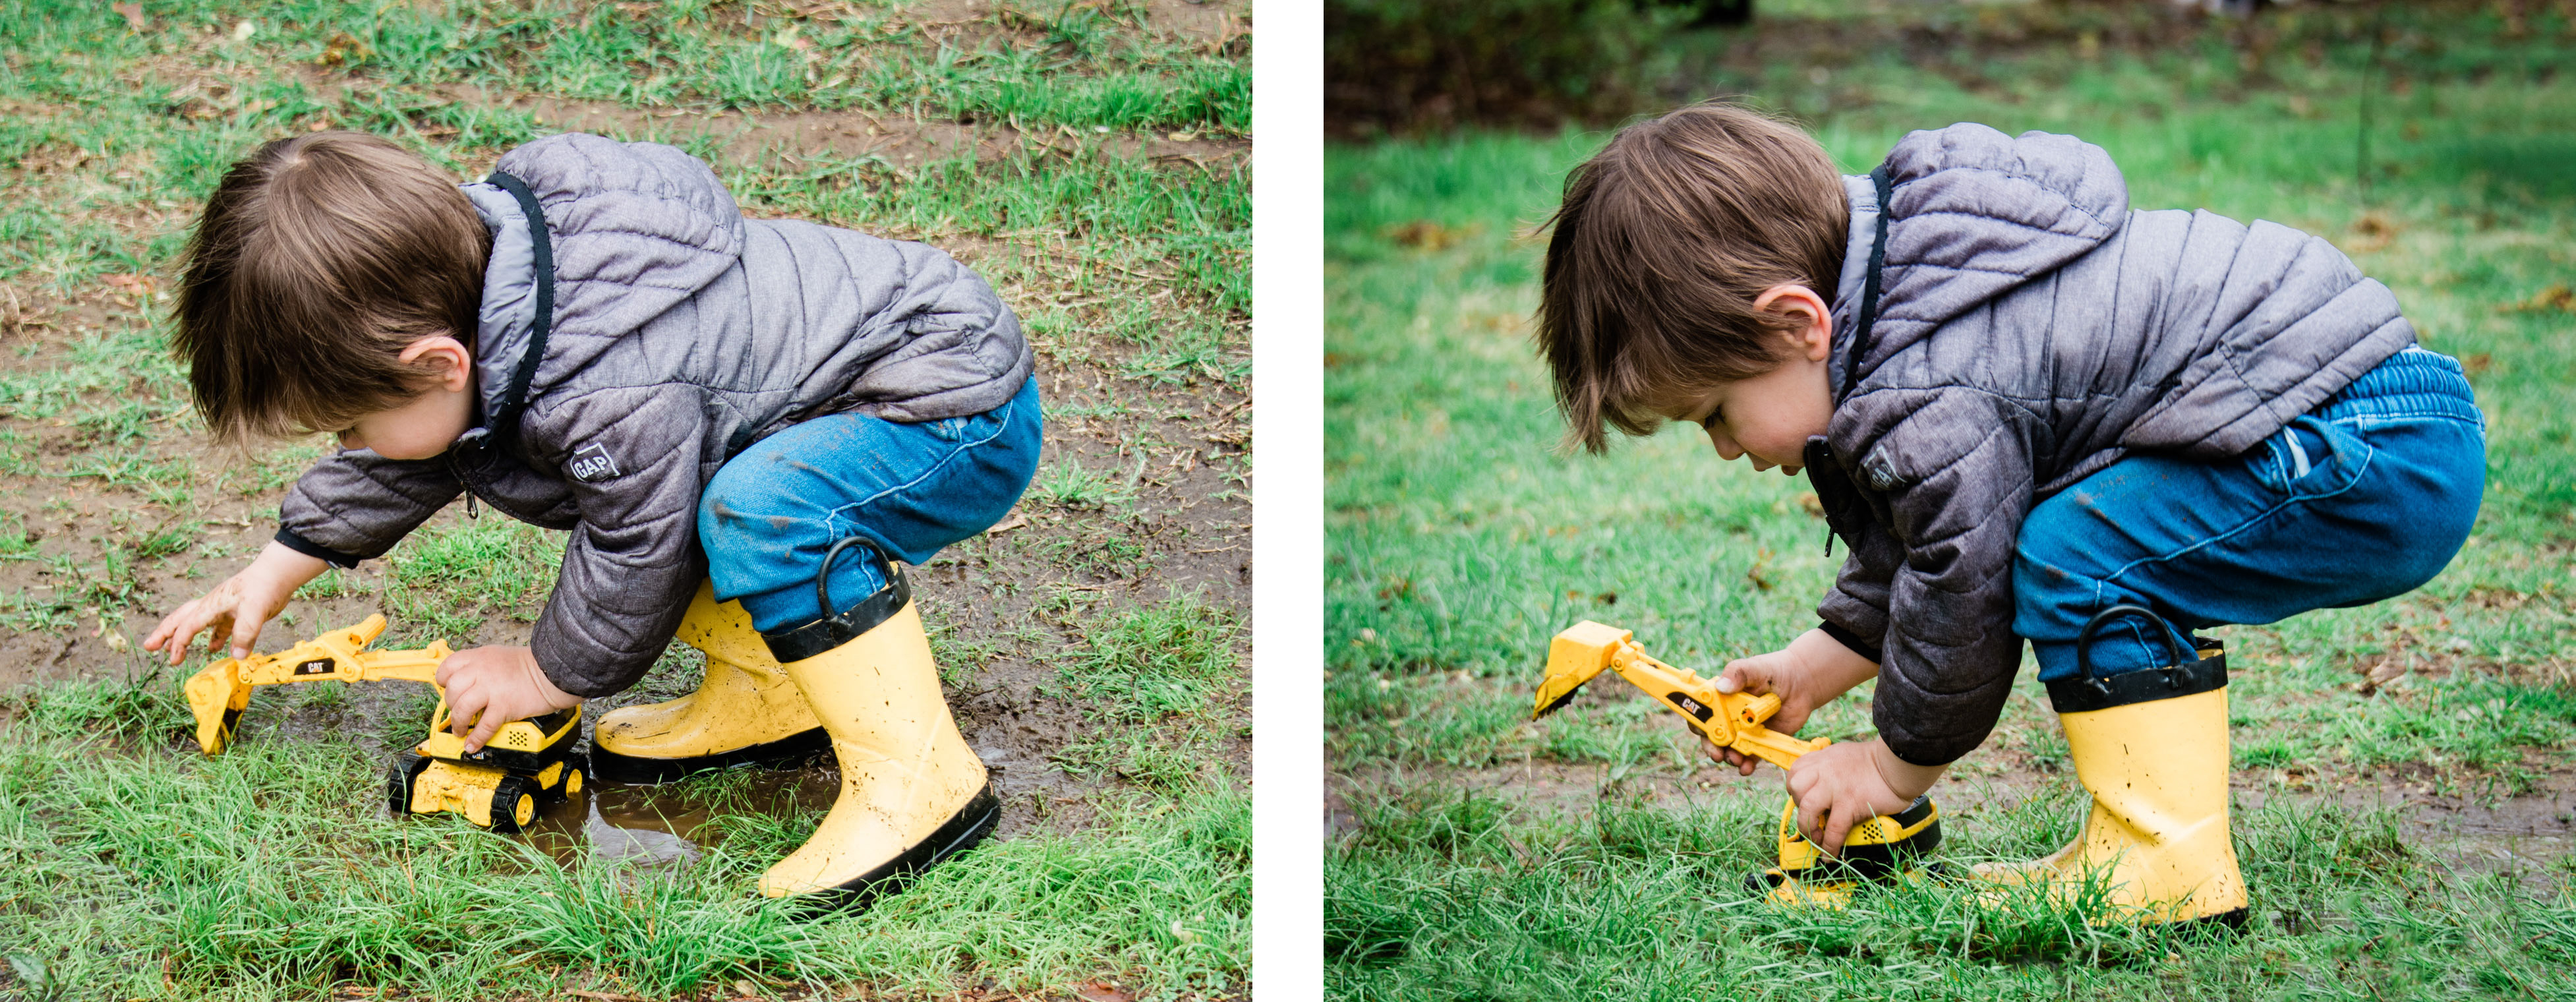 a young boy plays with his toy truck in yellow rain boots, photographed by jamie bannon photography.